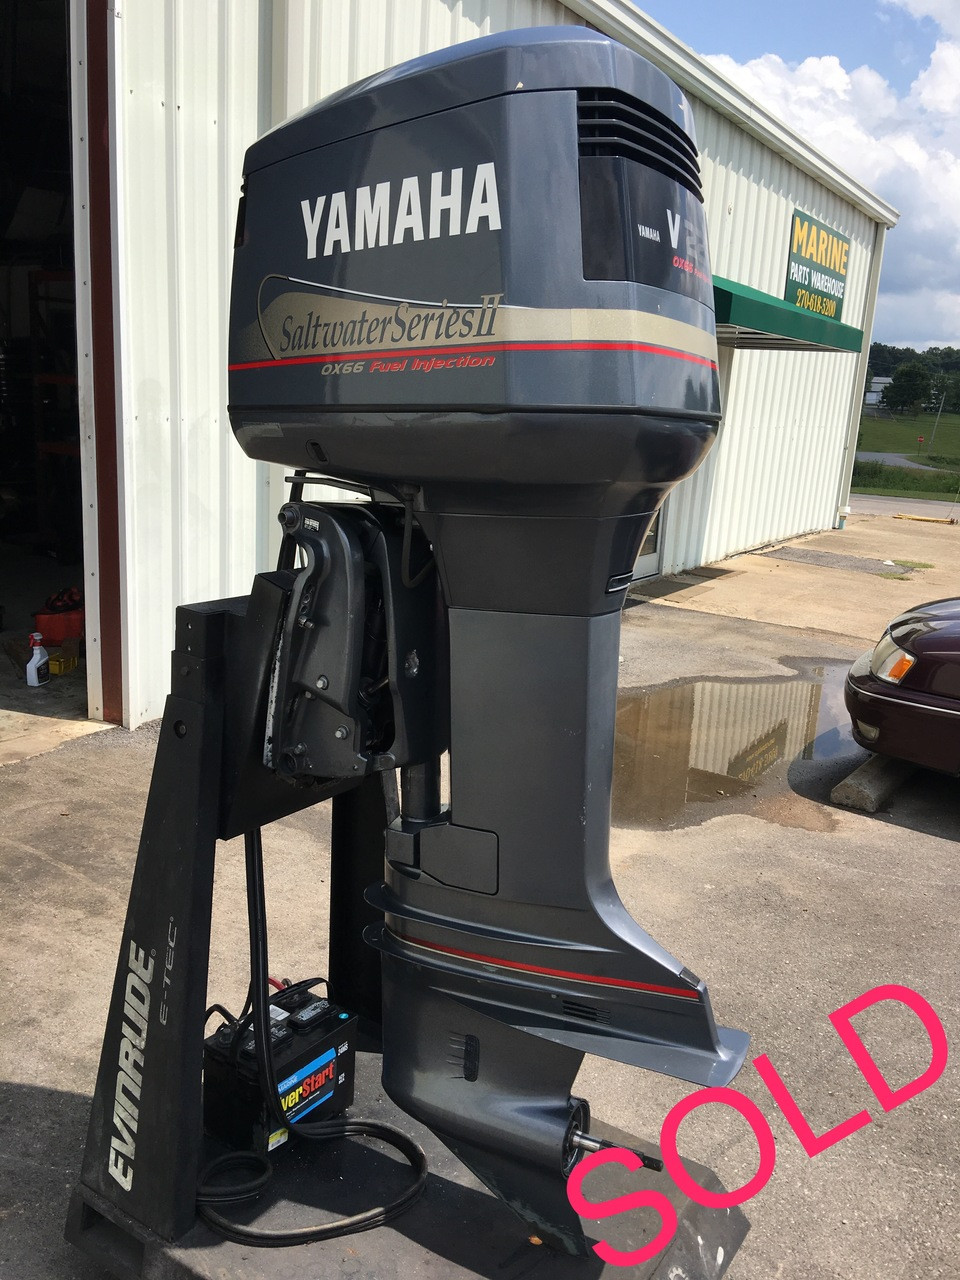 medium resolution of 2001 yamaha v225 saltwater series ii ox66 fuel injection 3 1l v6 2 stroke 30 outboard motor